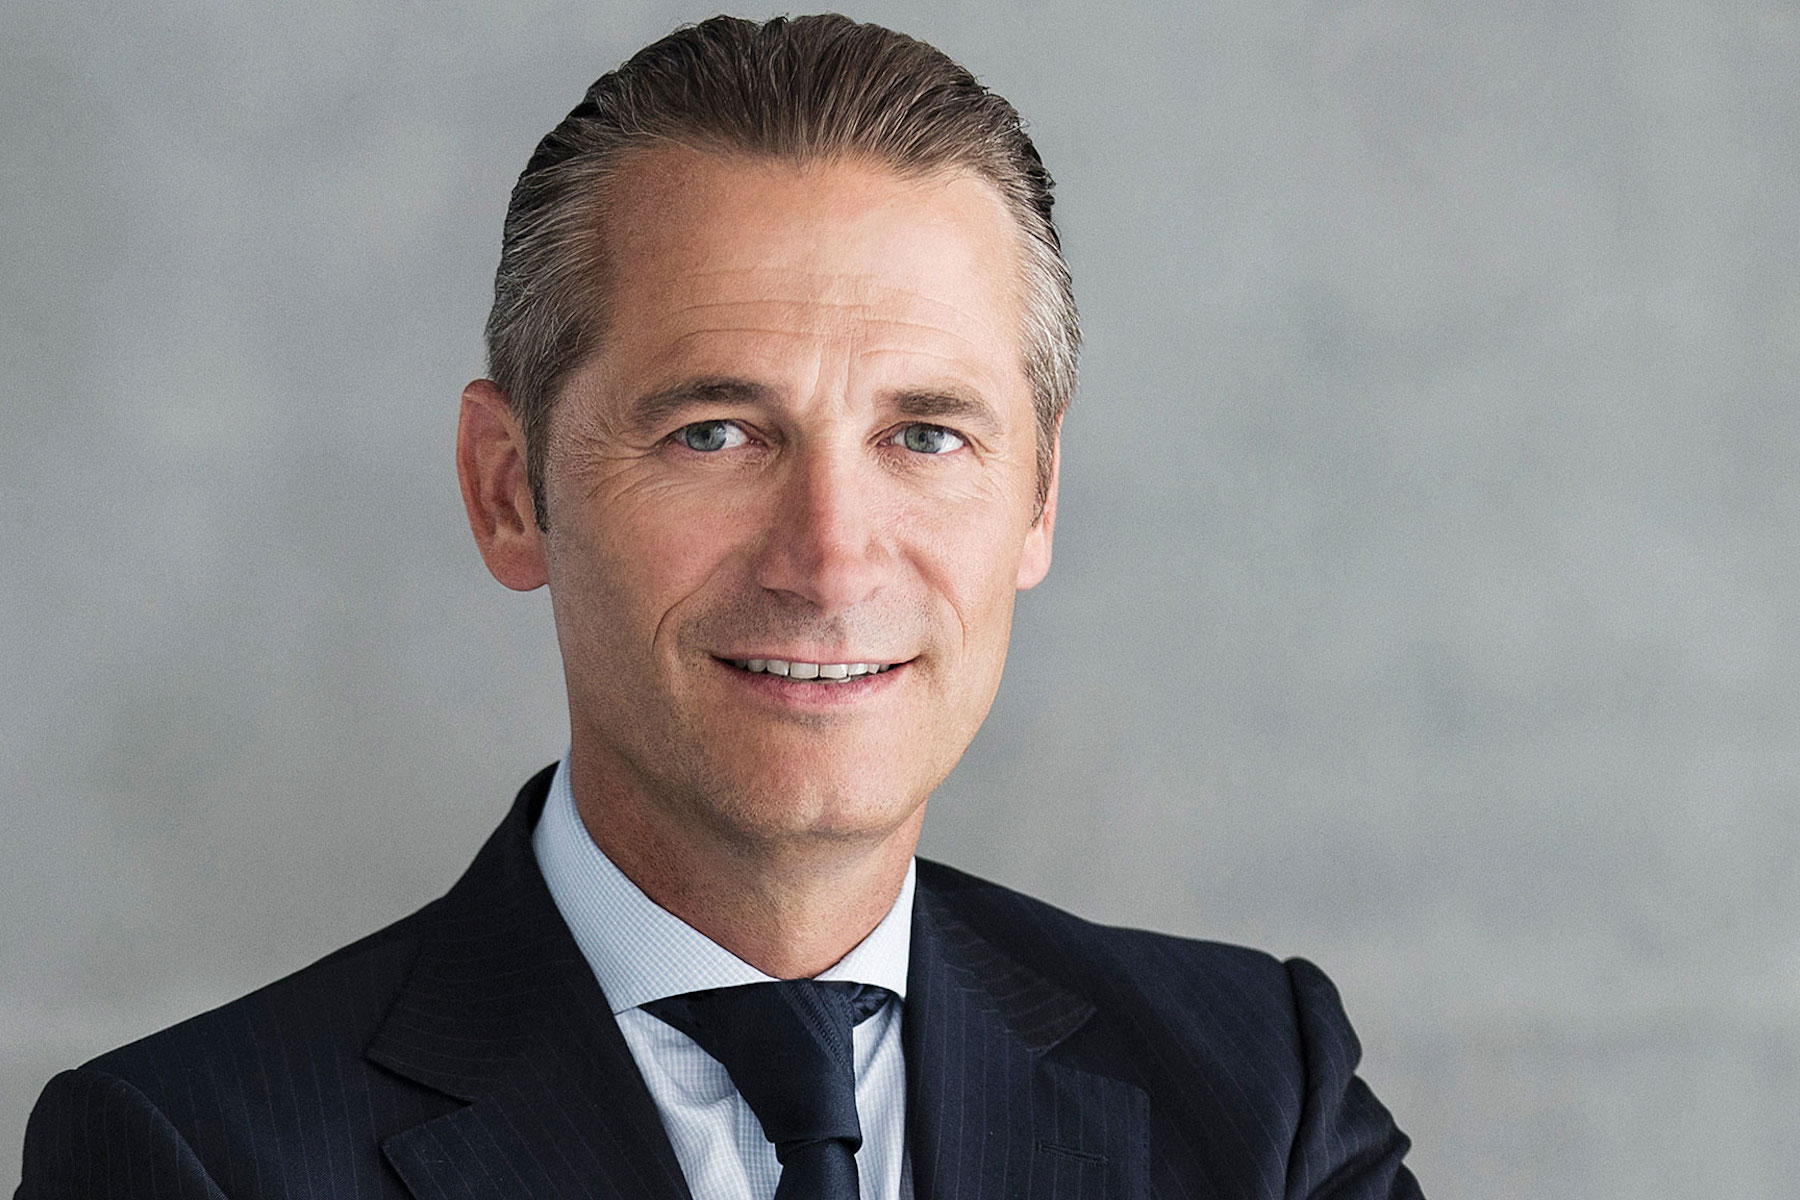 Interview Omega CEO Raynald Aeschlimann 2019 Brand Outlook and Innovation